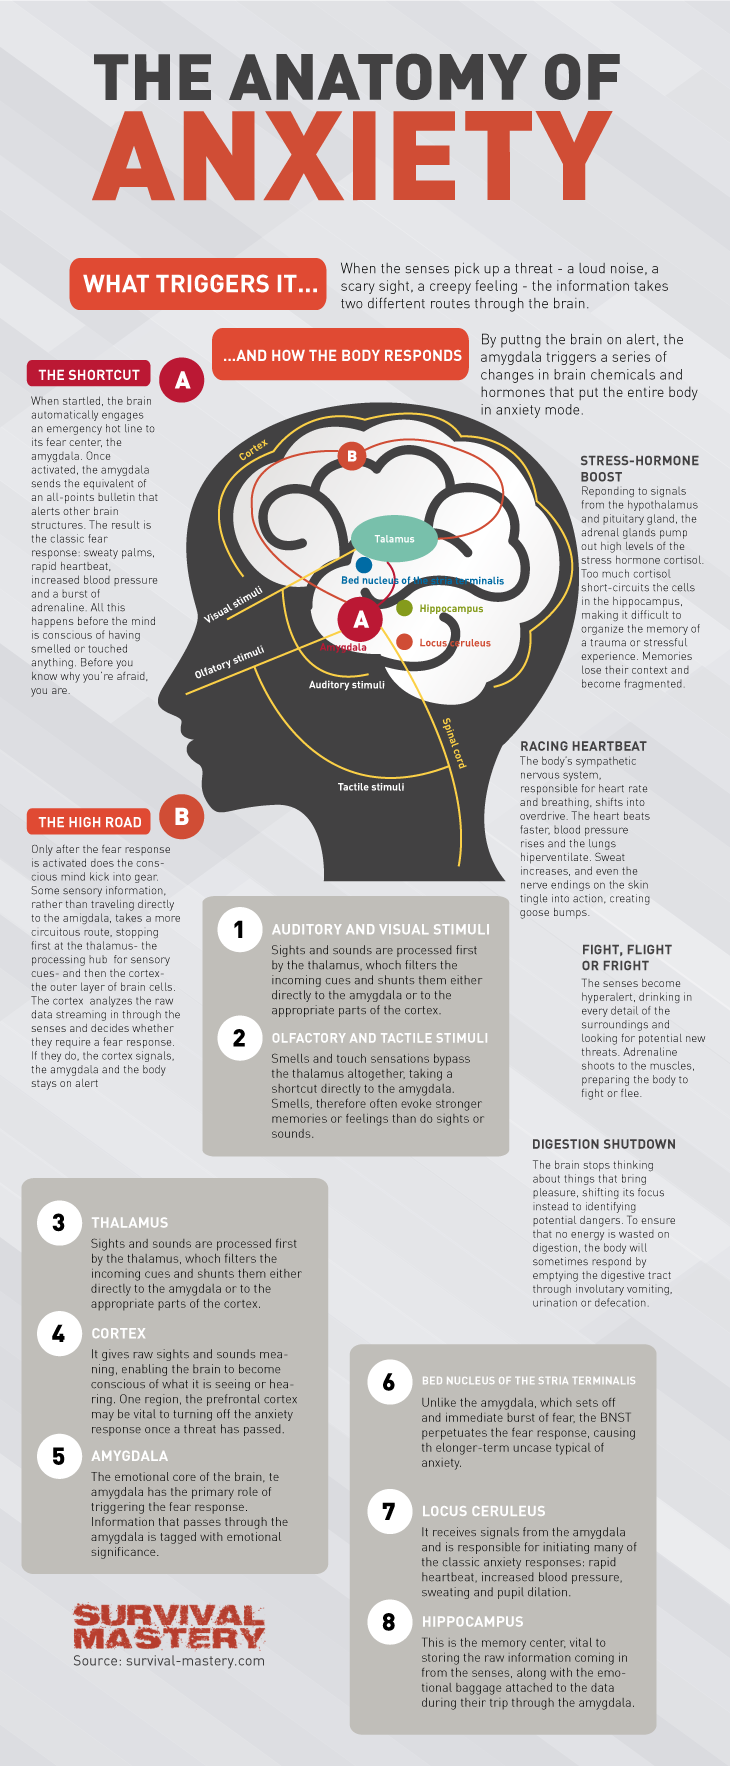 Anatomy of anxiety infographic